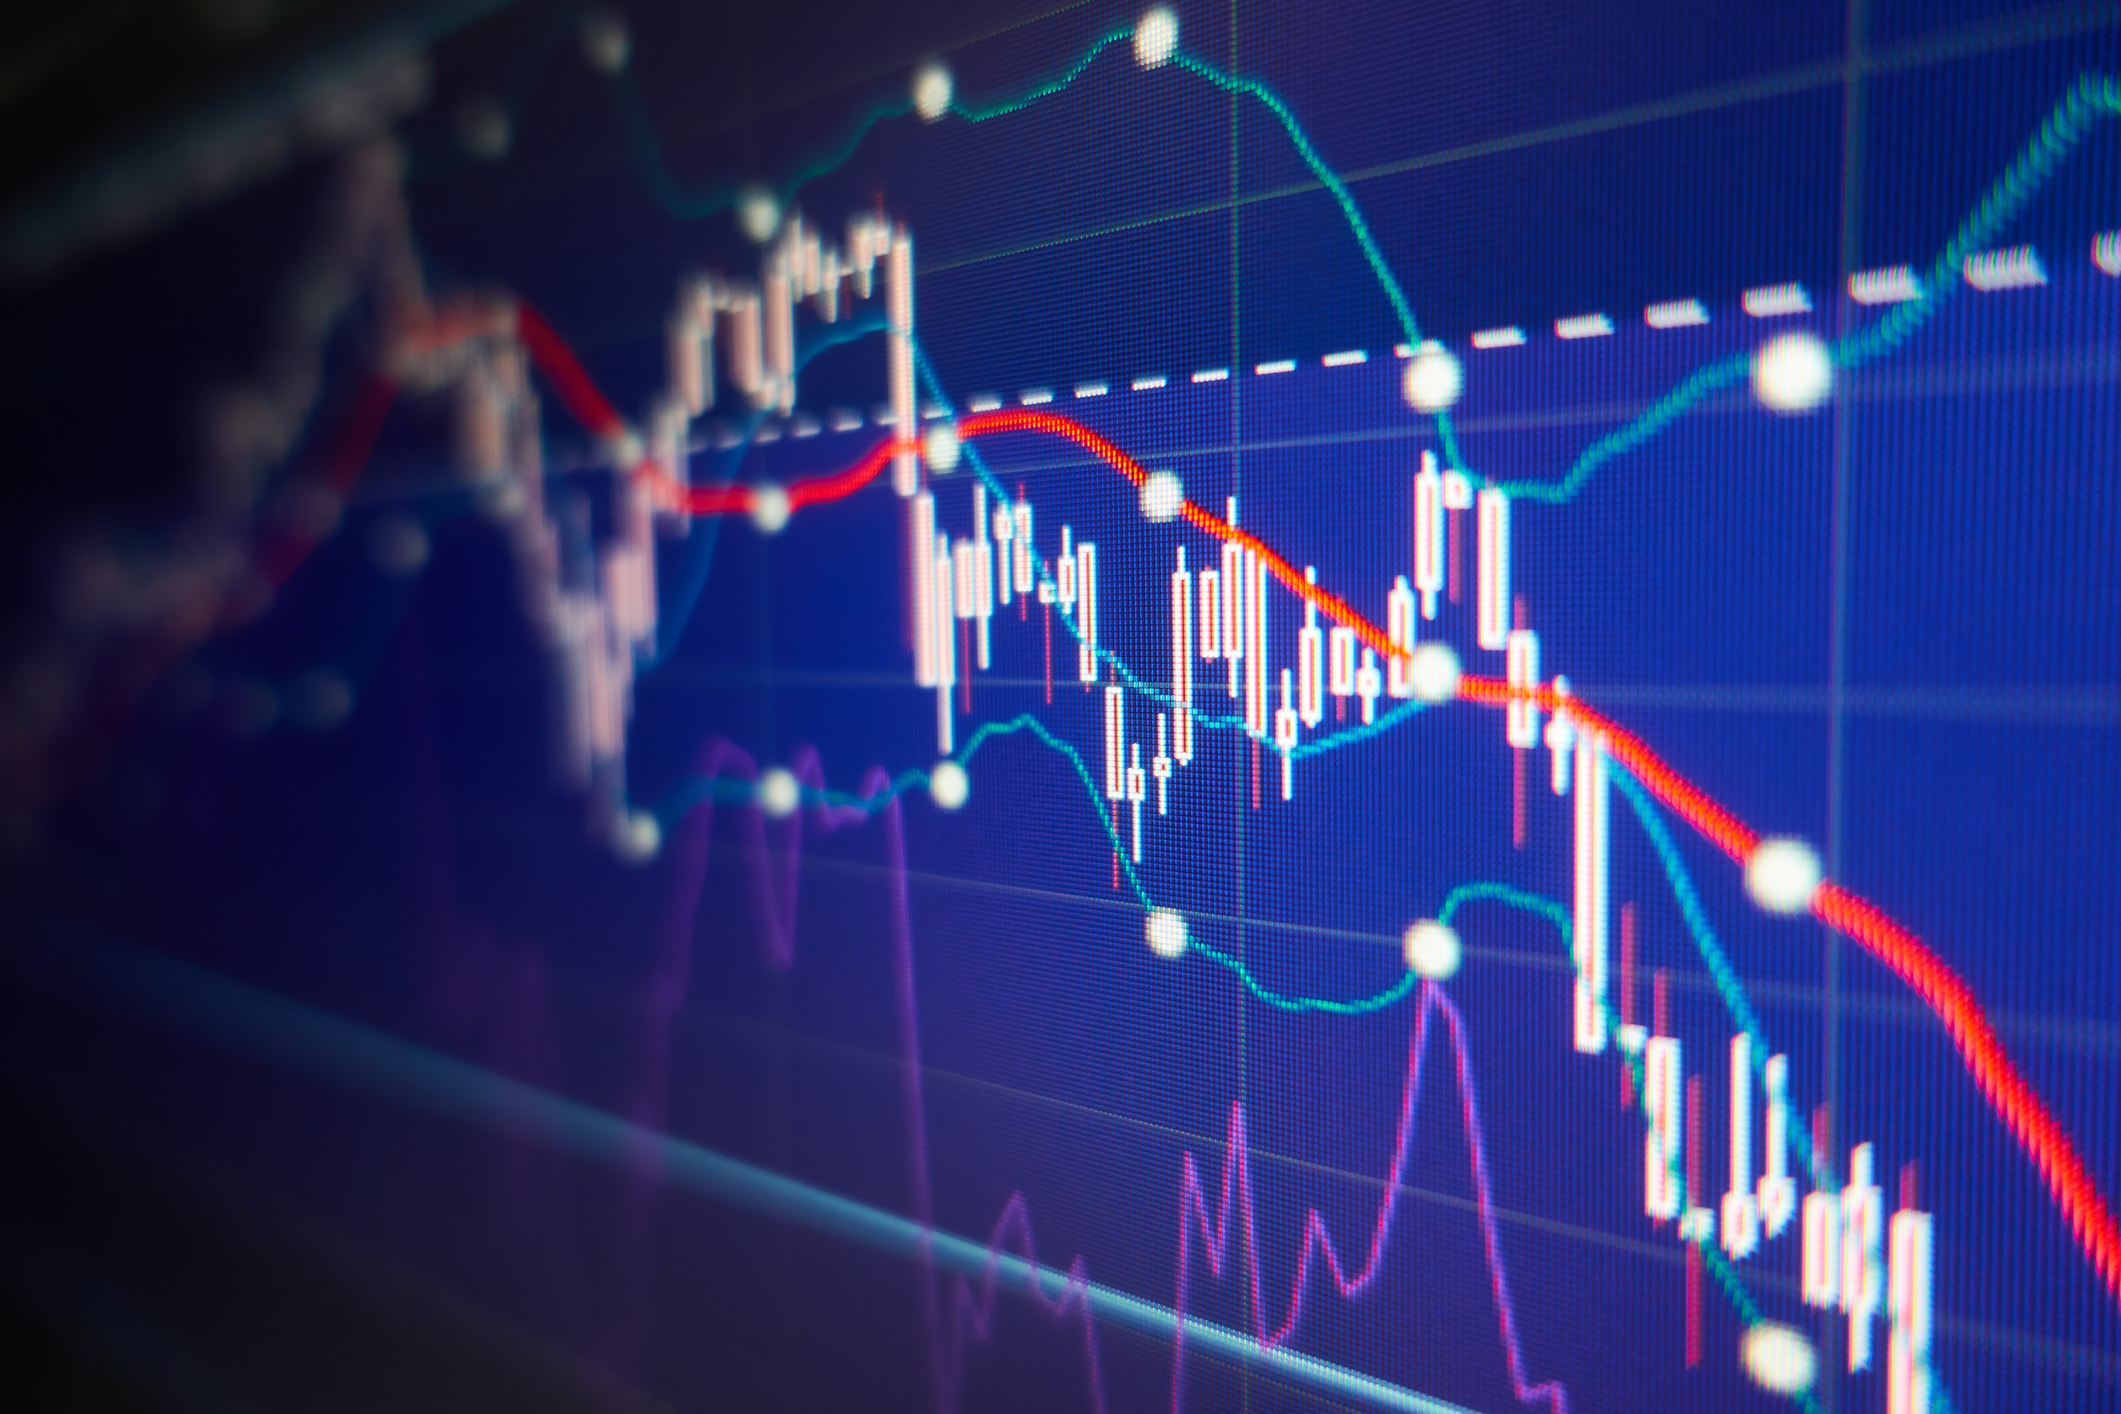 What Is The Purpose Of Technical Analysis